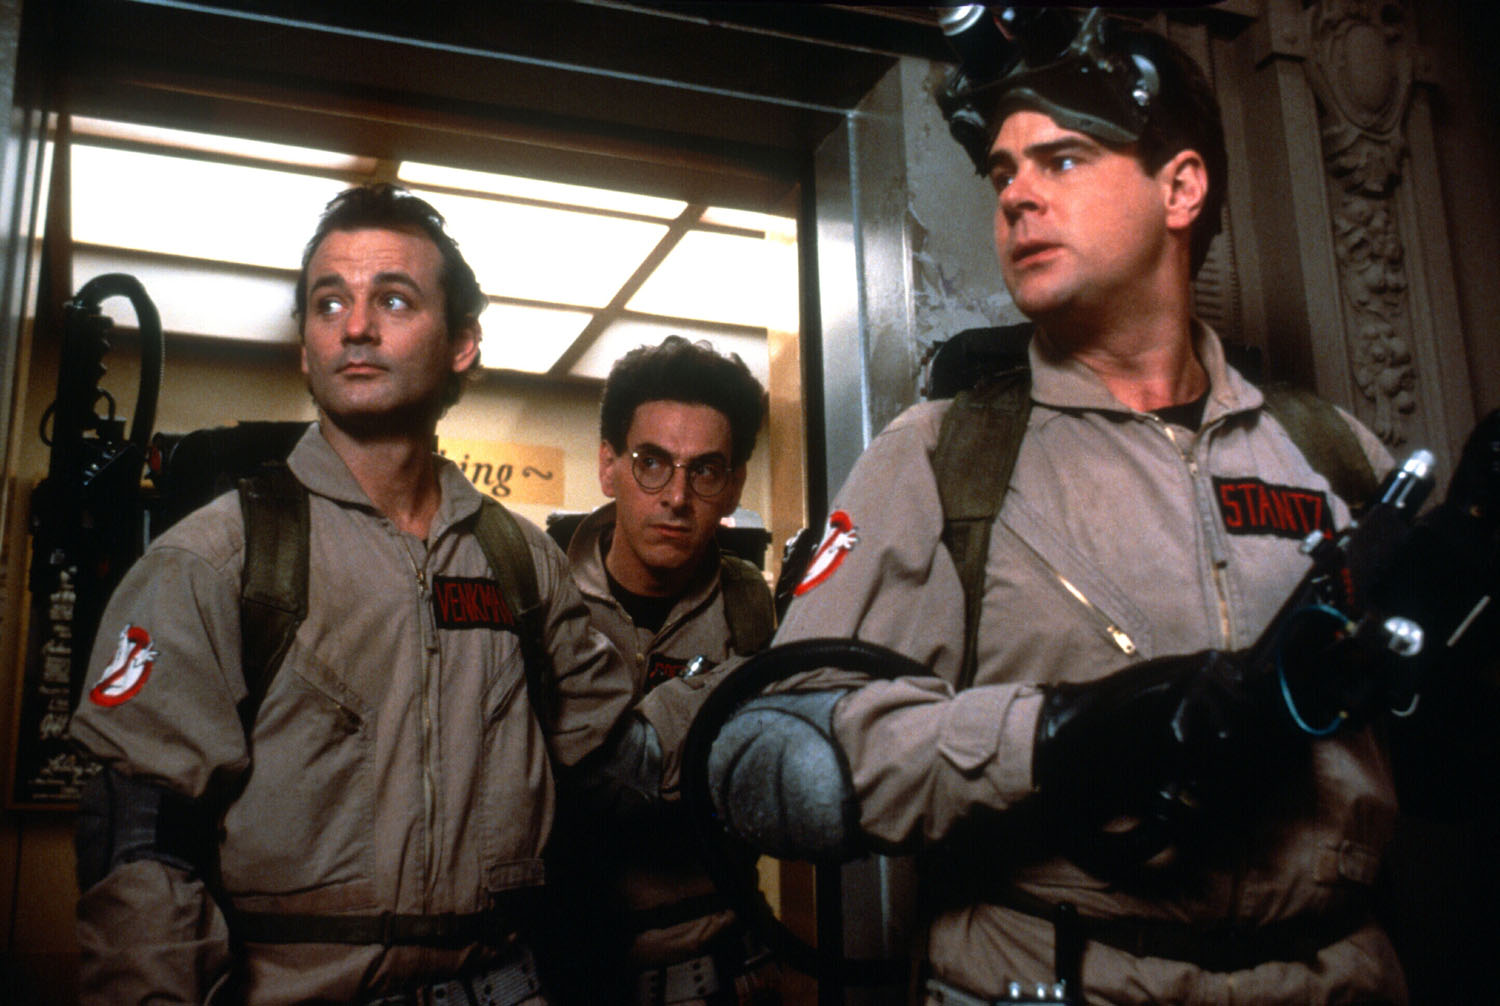 Ghost Busters (1984) Directed by Ivan Reitman Shown from left: Bill Murray (as Dr. Peter Venkman), Dan Aykroyd (as Dr. Raymond Stantz), Ernie Hudson (as Winston Zeddmore)